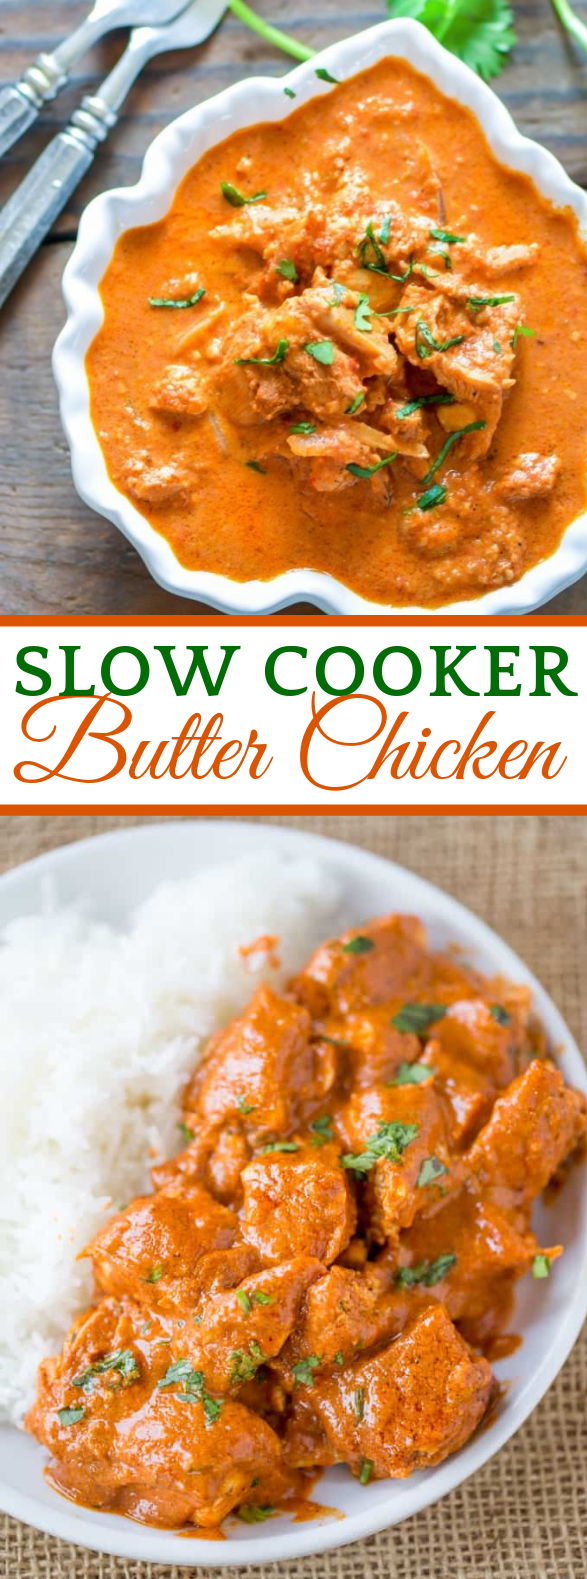 SLOW COOKER INDIAN BUTTER CHICKEN #dinner #indianfood